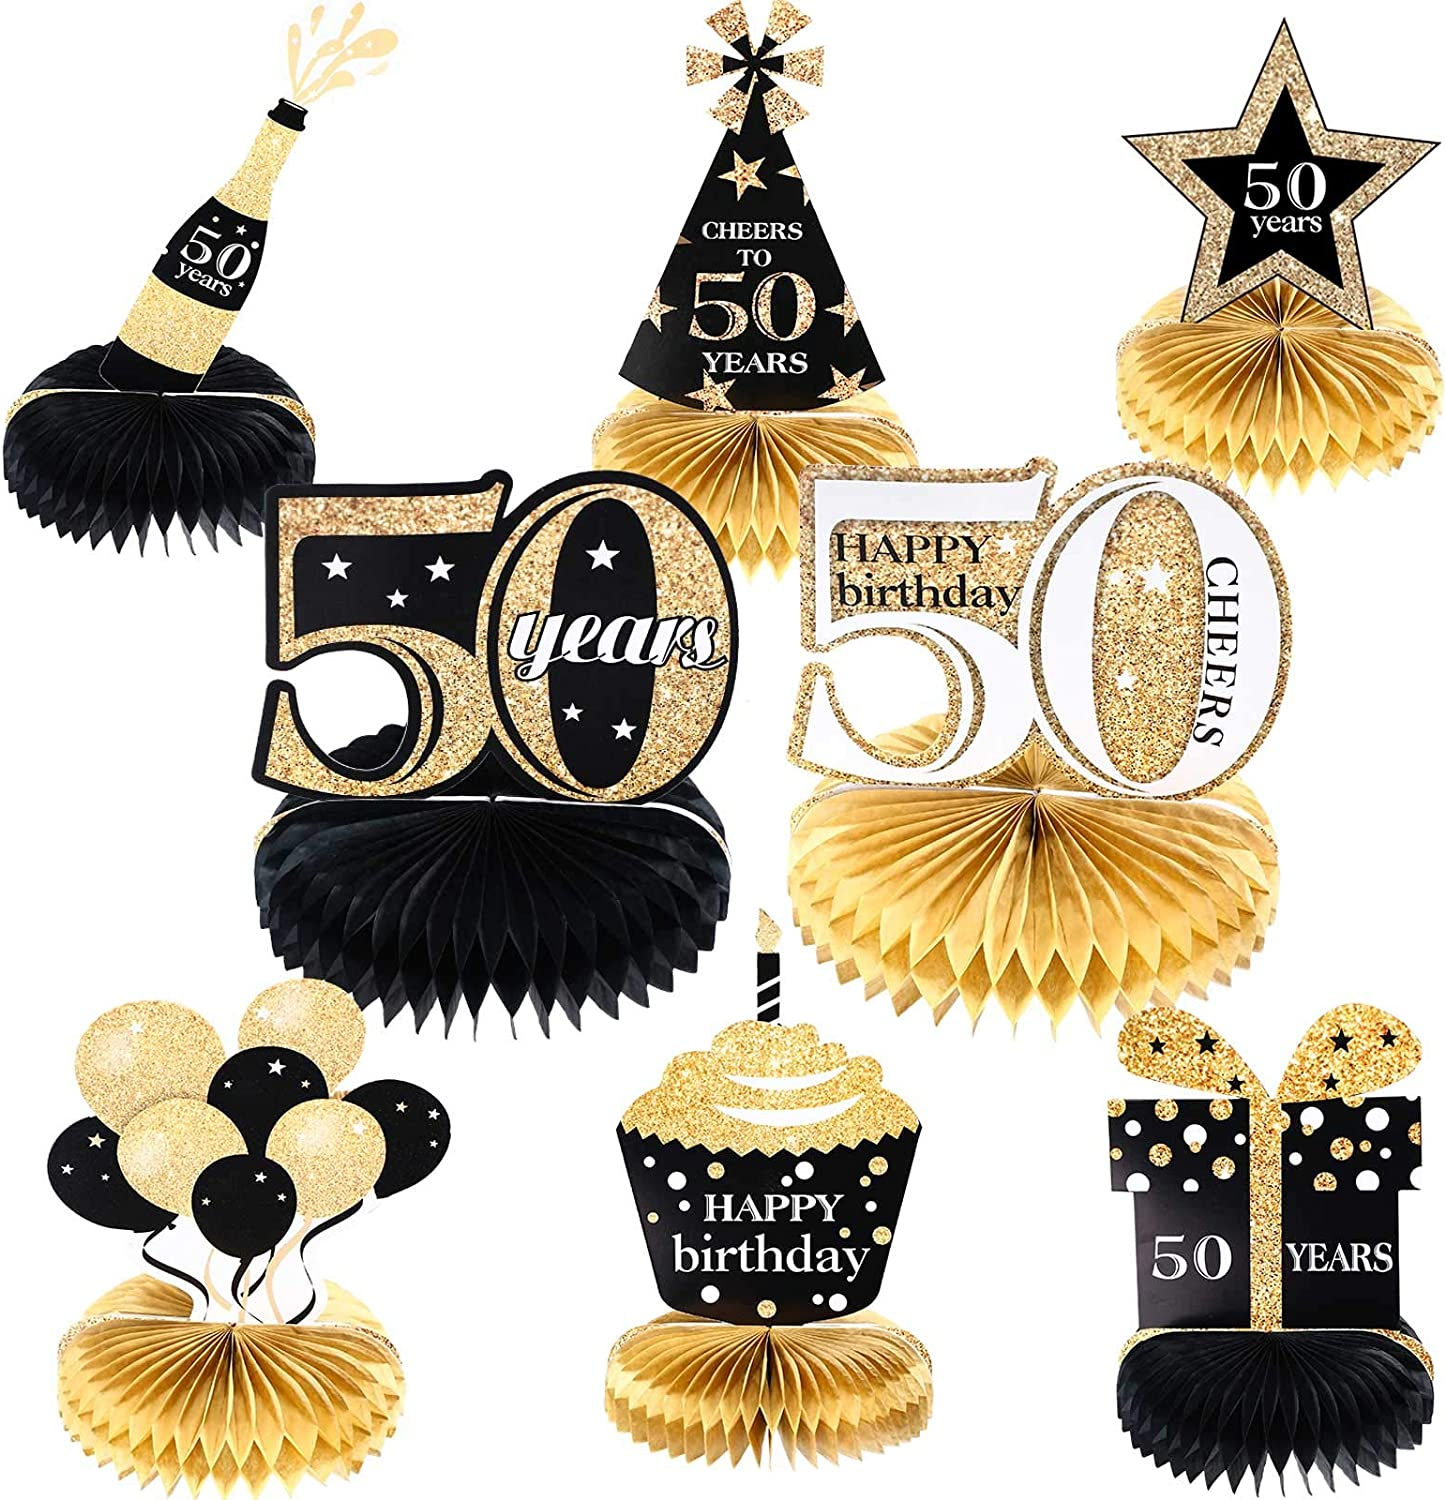 8 Pieces 50th Birthday Honeycomb Centerpieces 50th Party Centerpieces Happy Birthday Cheers to 50 Years Table Decorations 50th Party DecorationsSupplies